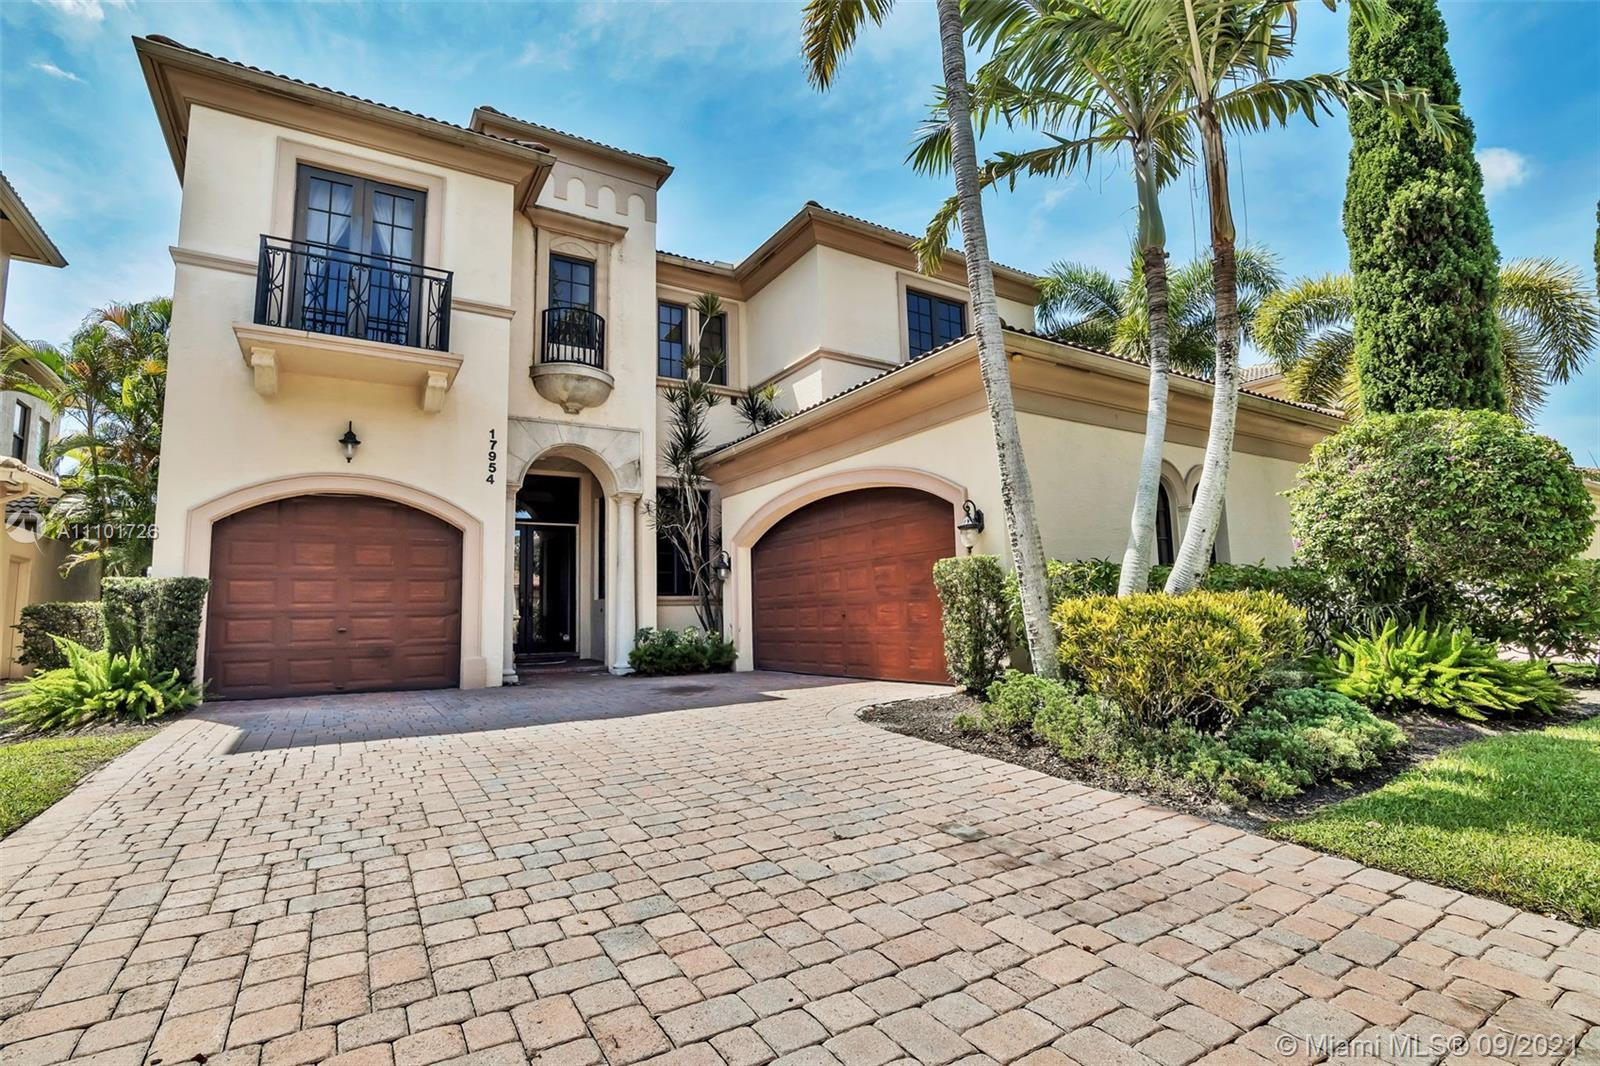 Mediterranean elegance resonates in one of the most sought after locations in Boca Raton. This 5 bed